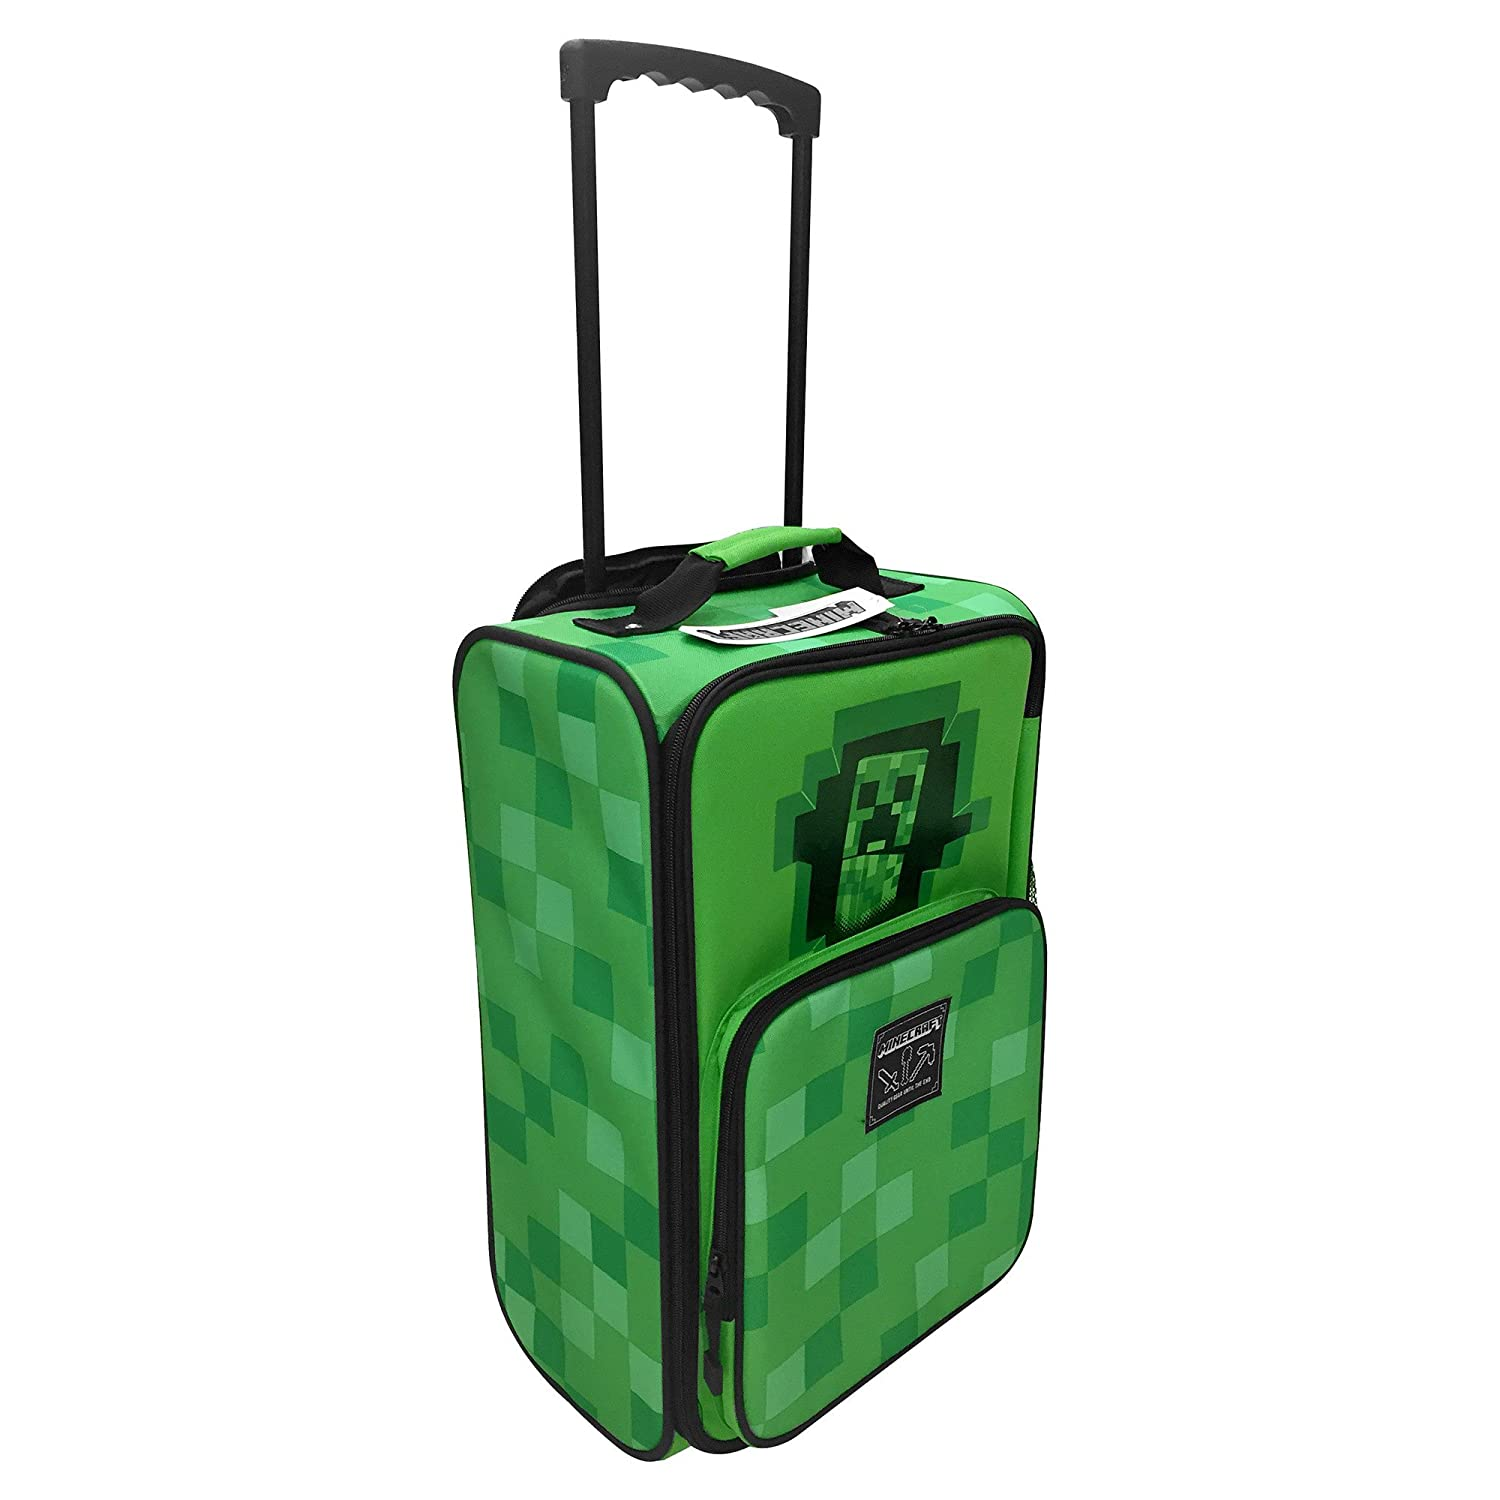 JINX Minecraft Creepy Creeper Rolling Carry On Luggage (Green, 18) 18) 806409558506